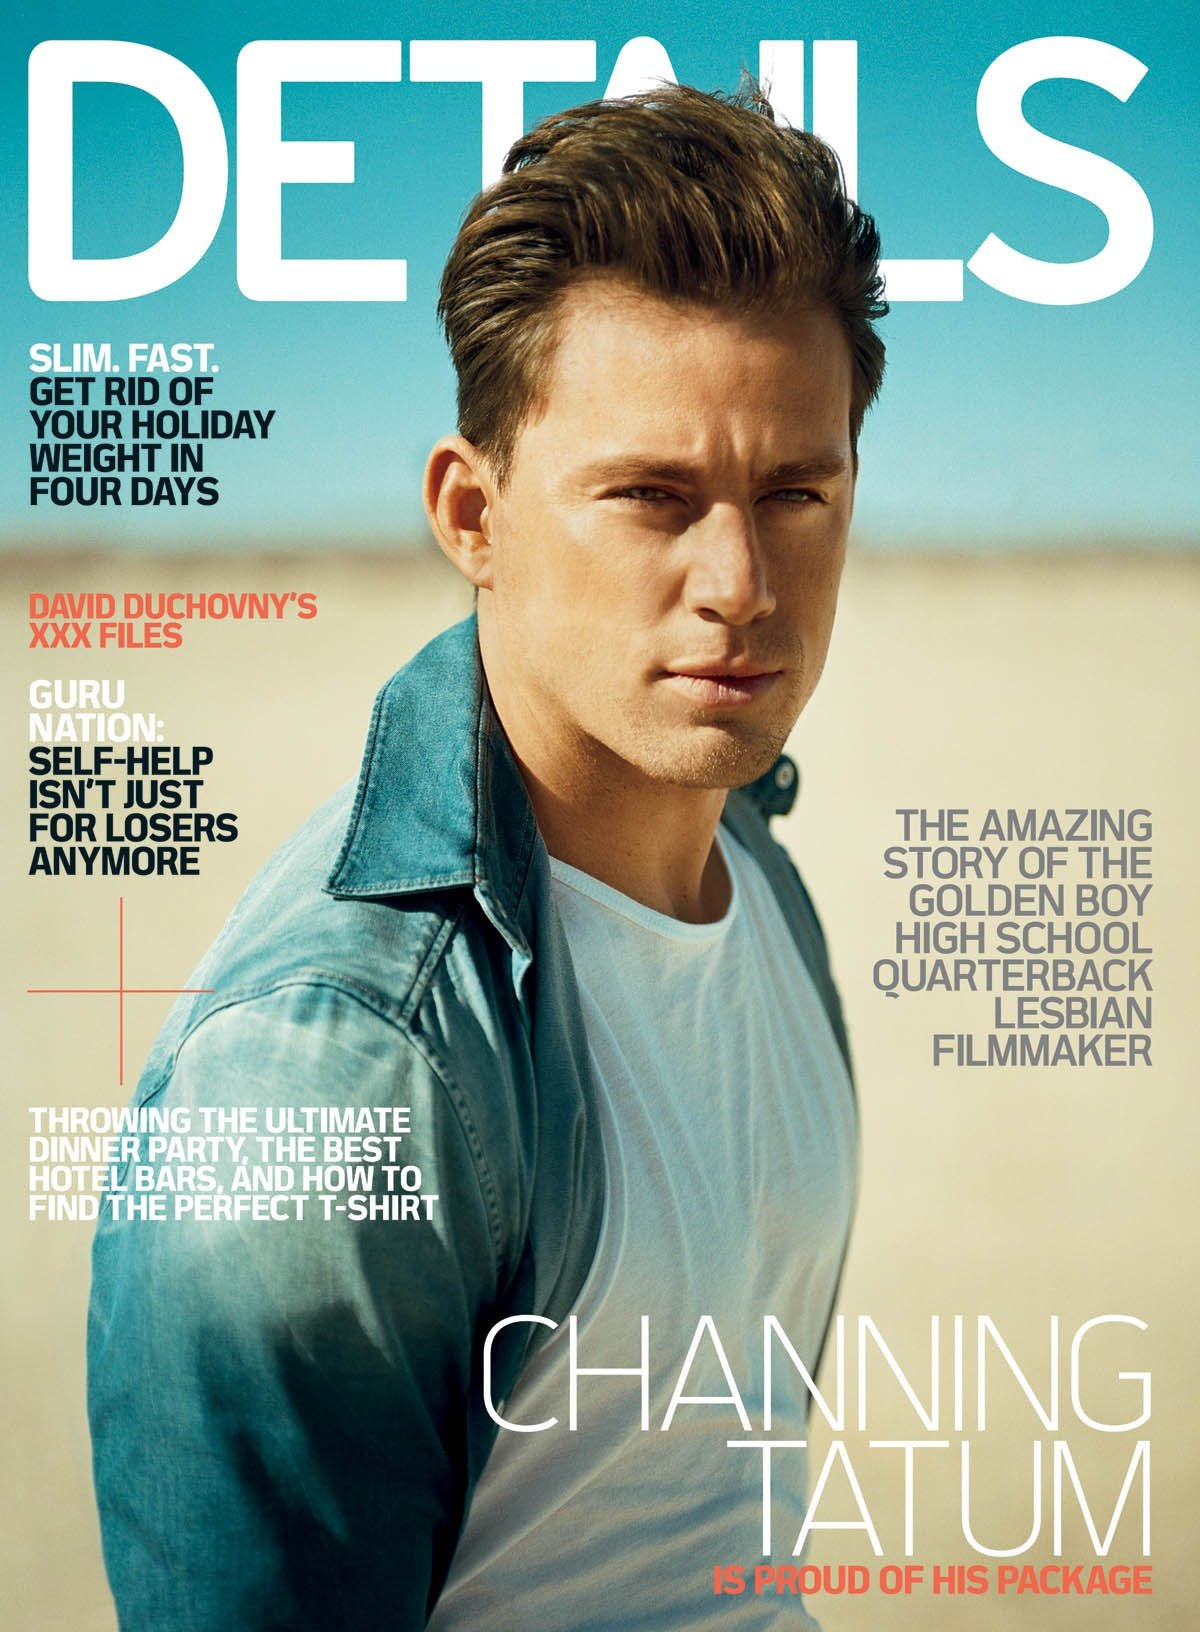 Channing Tatum Featured in February 2010 Details Magazine